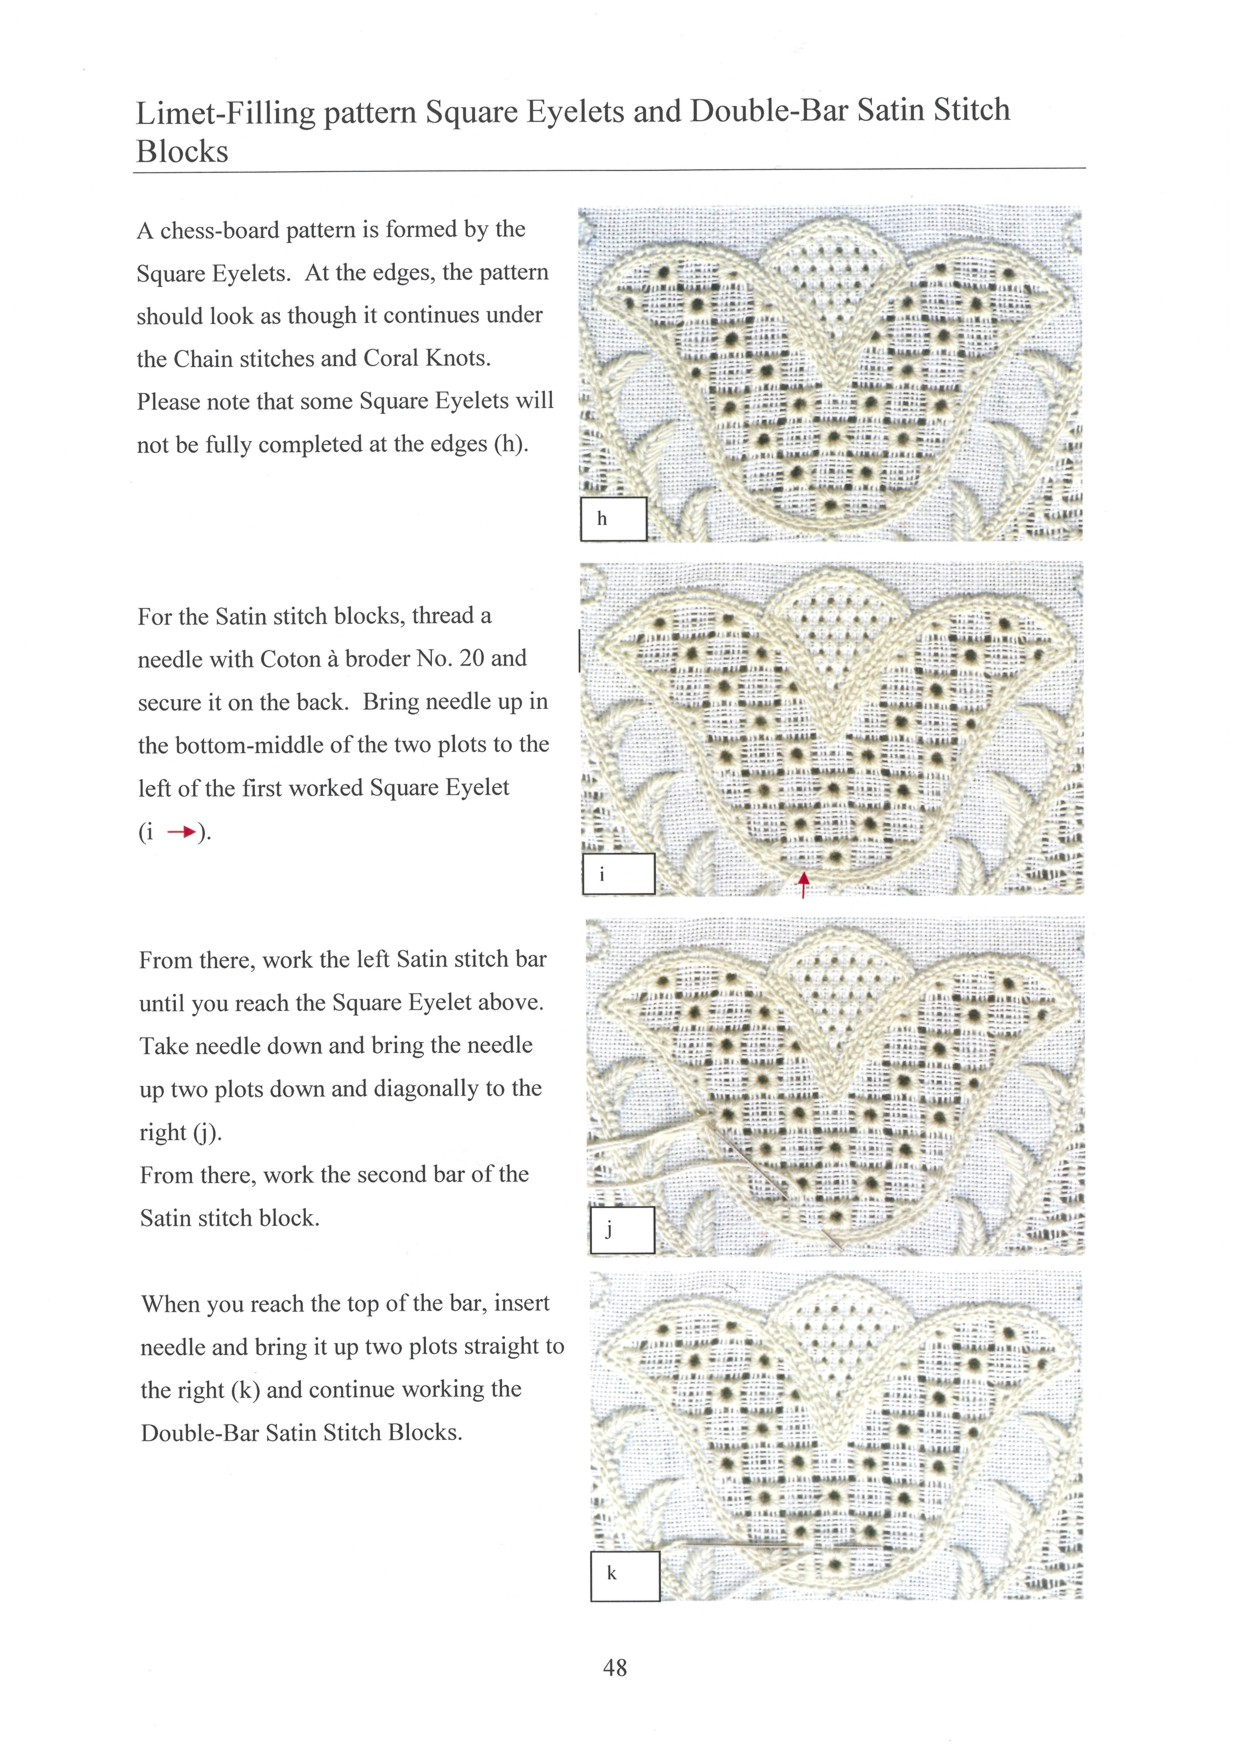 Basic Principles of Schwalm Whitework - for left-handed 7 / 8